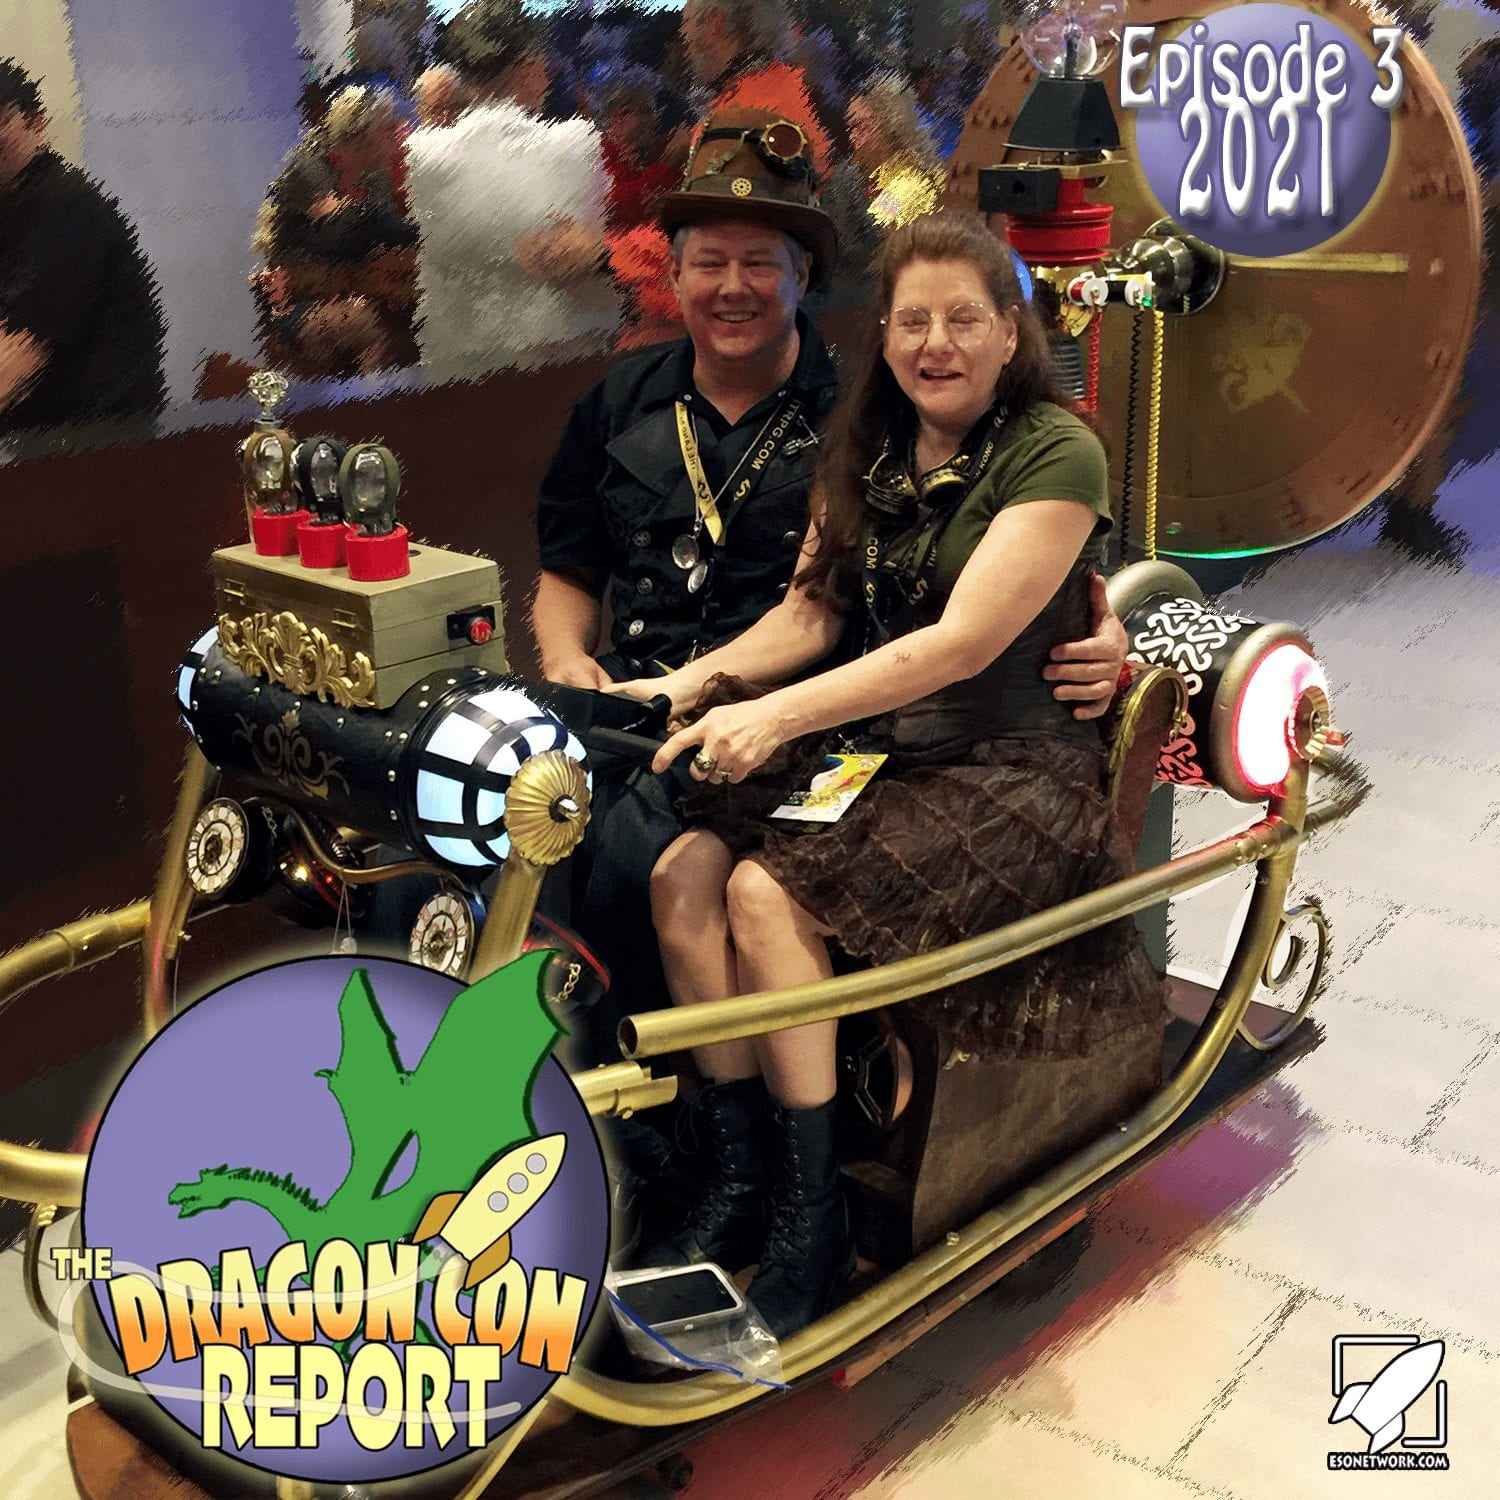 The 2021 Dragon Con Report Episode 3